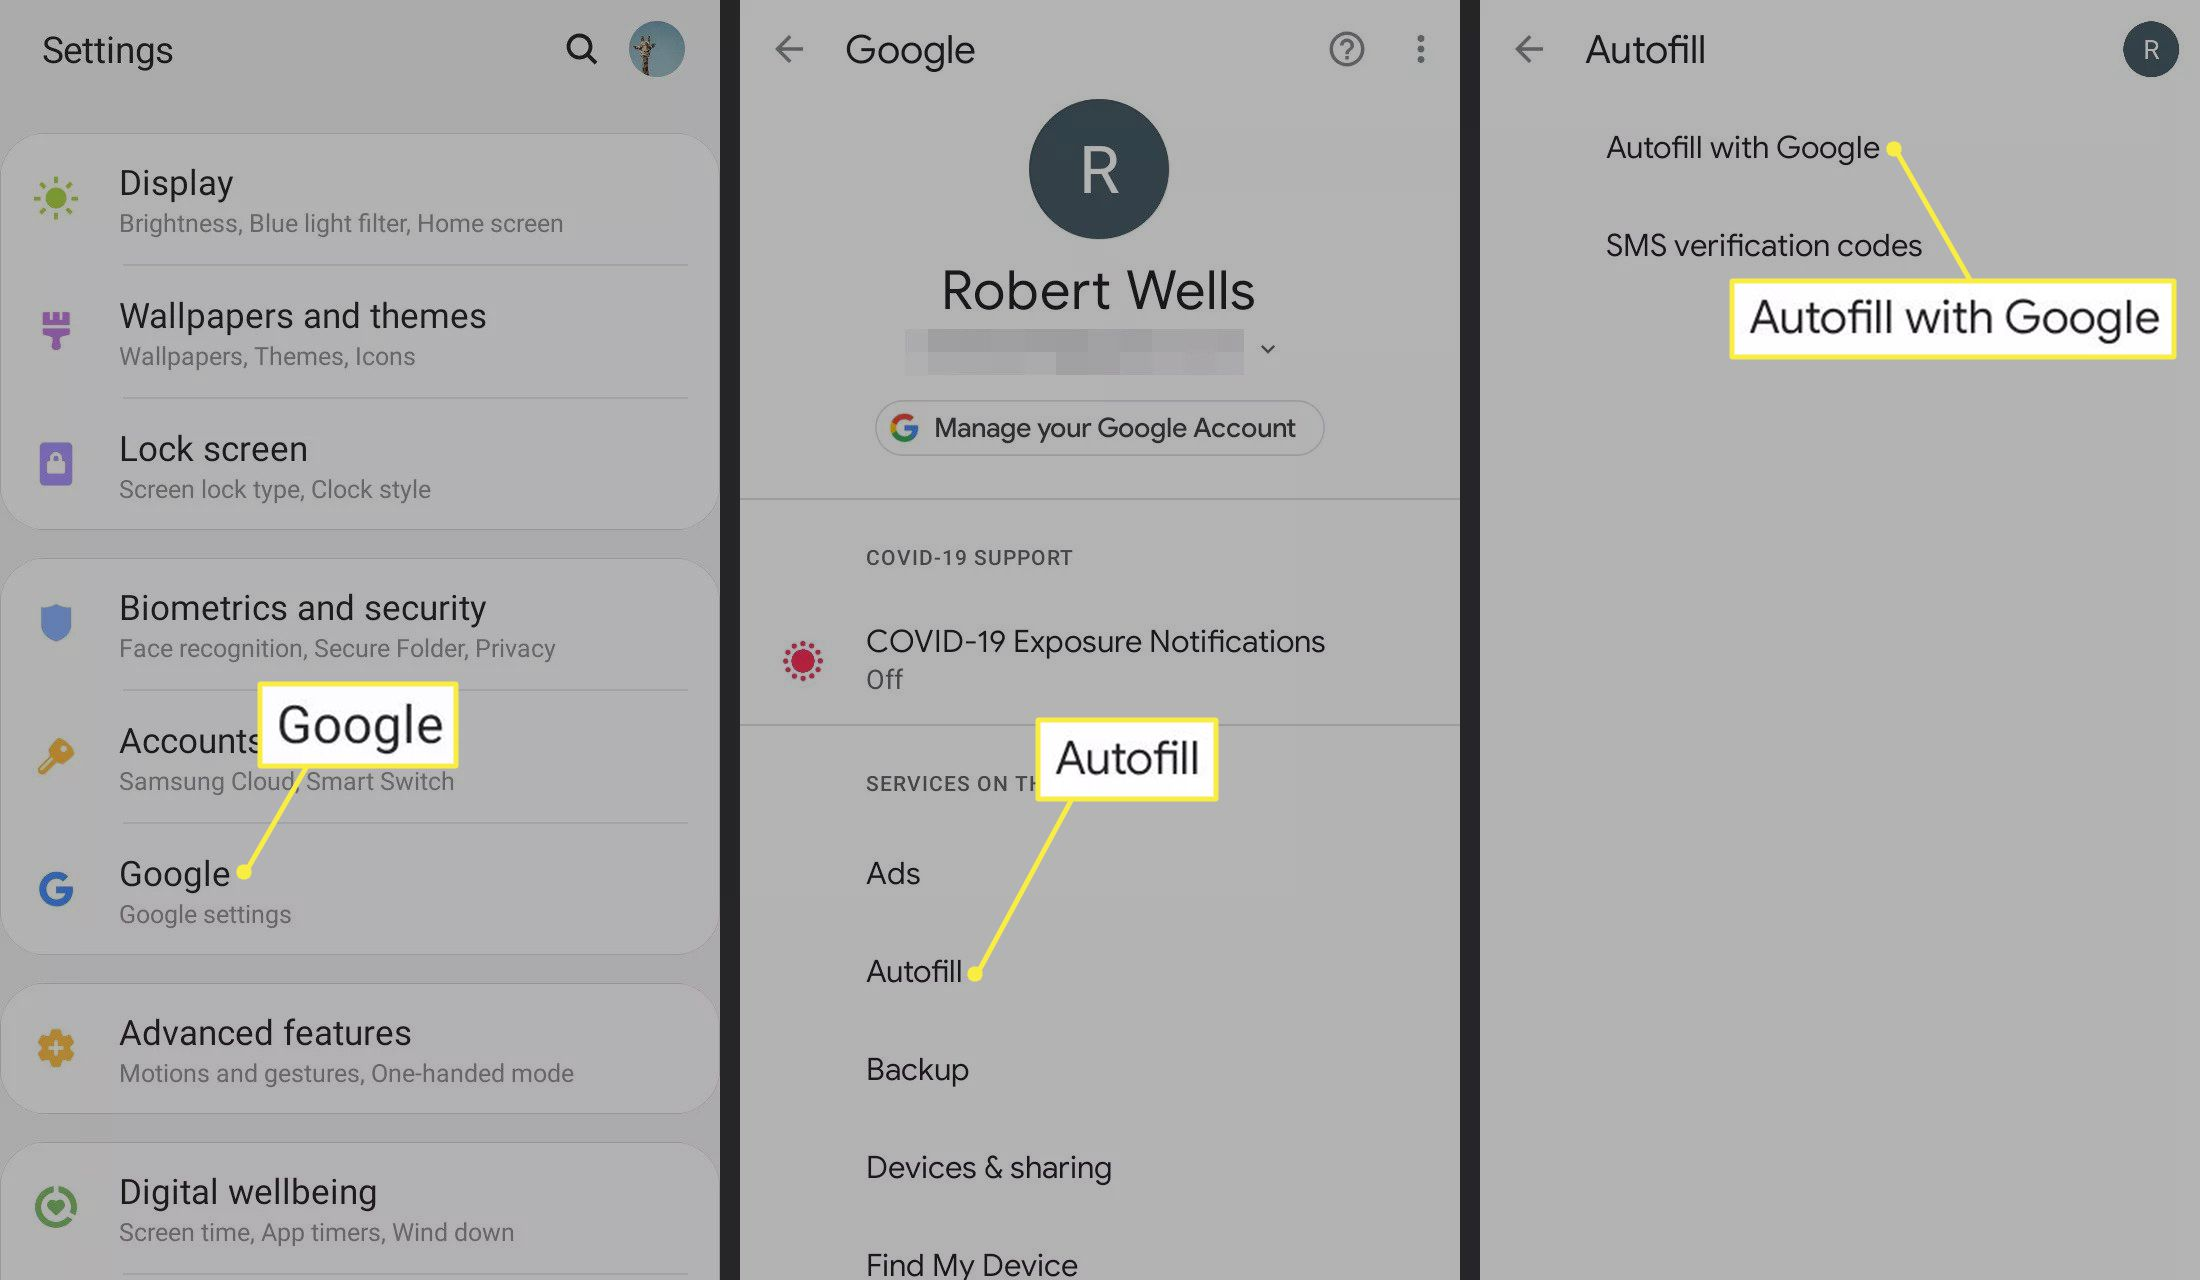 Google, Autofill, and Autofill with Google highlighted in Android Settings